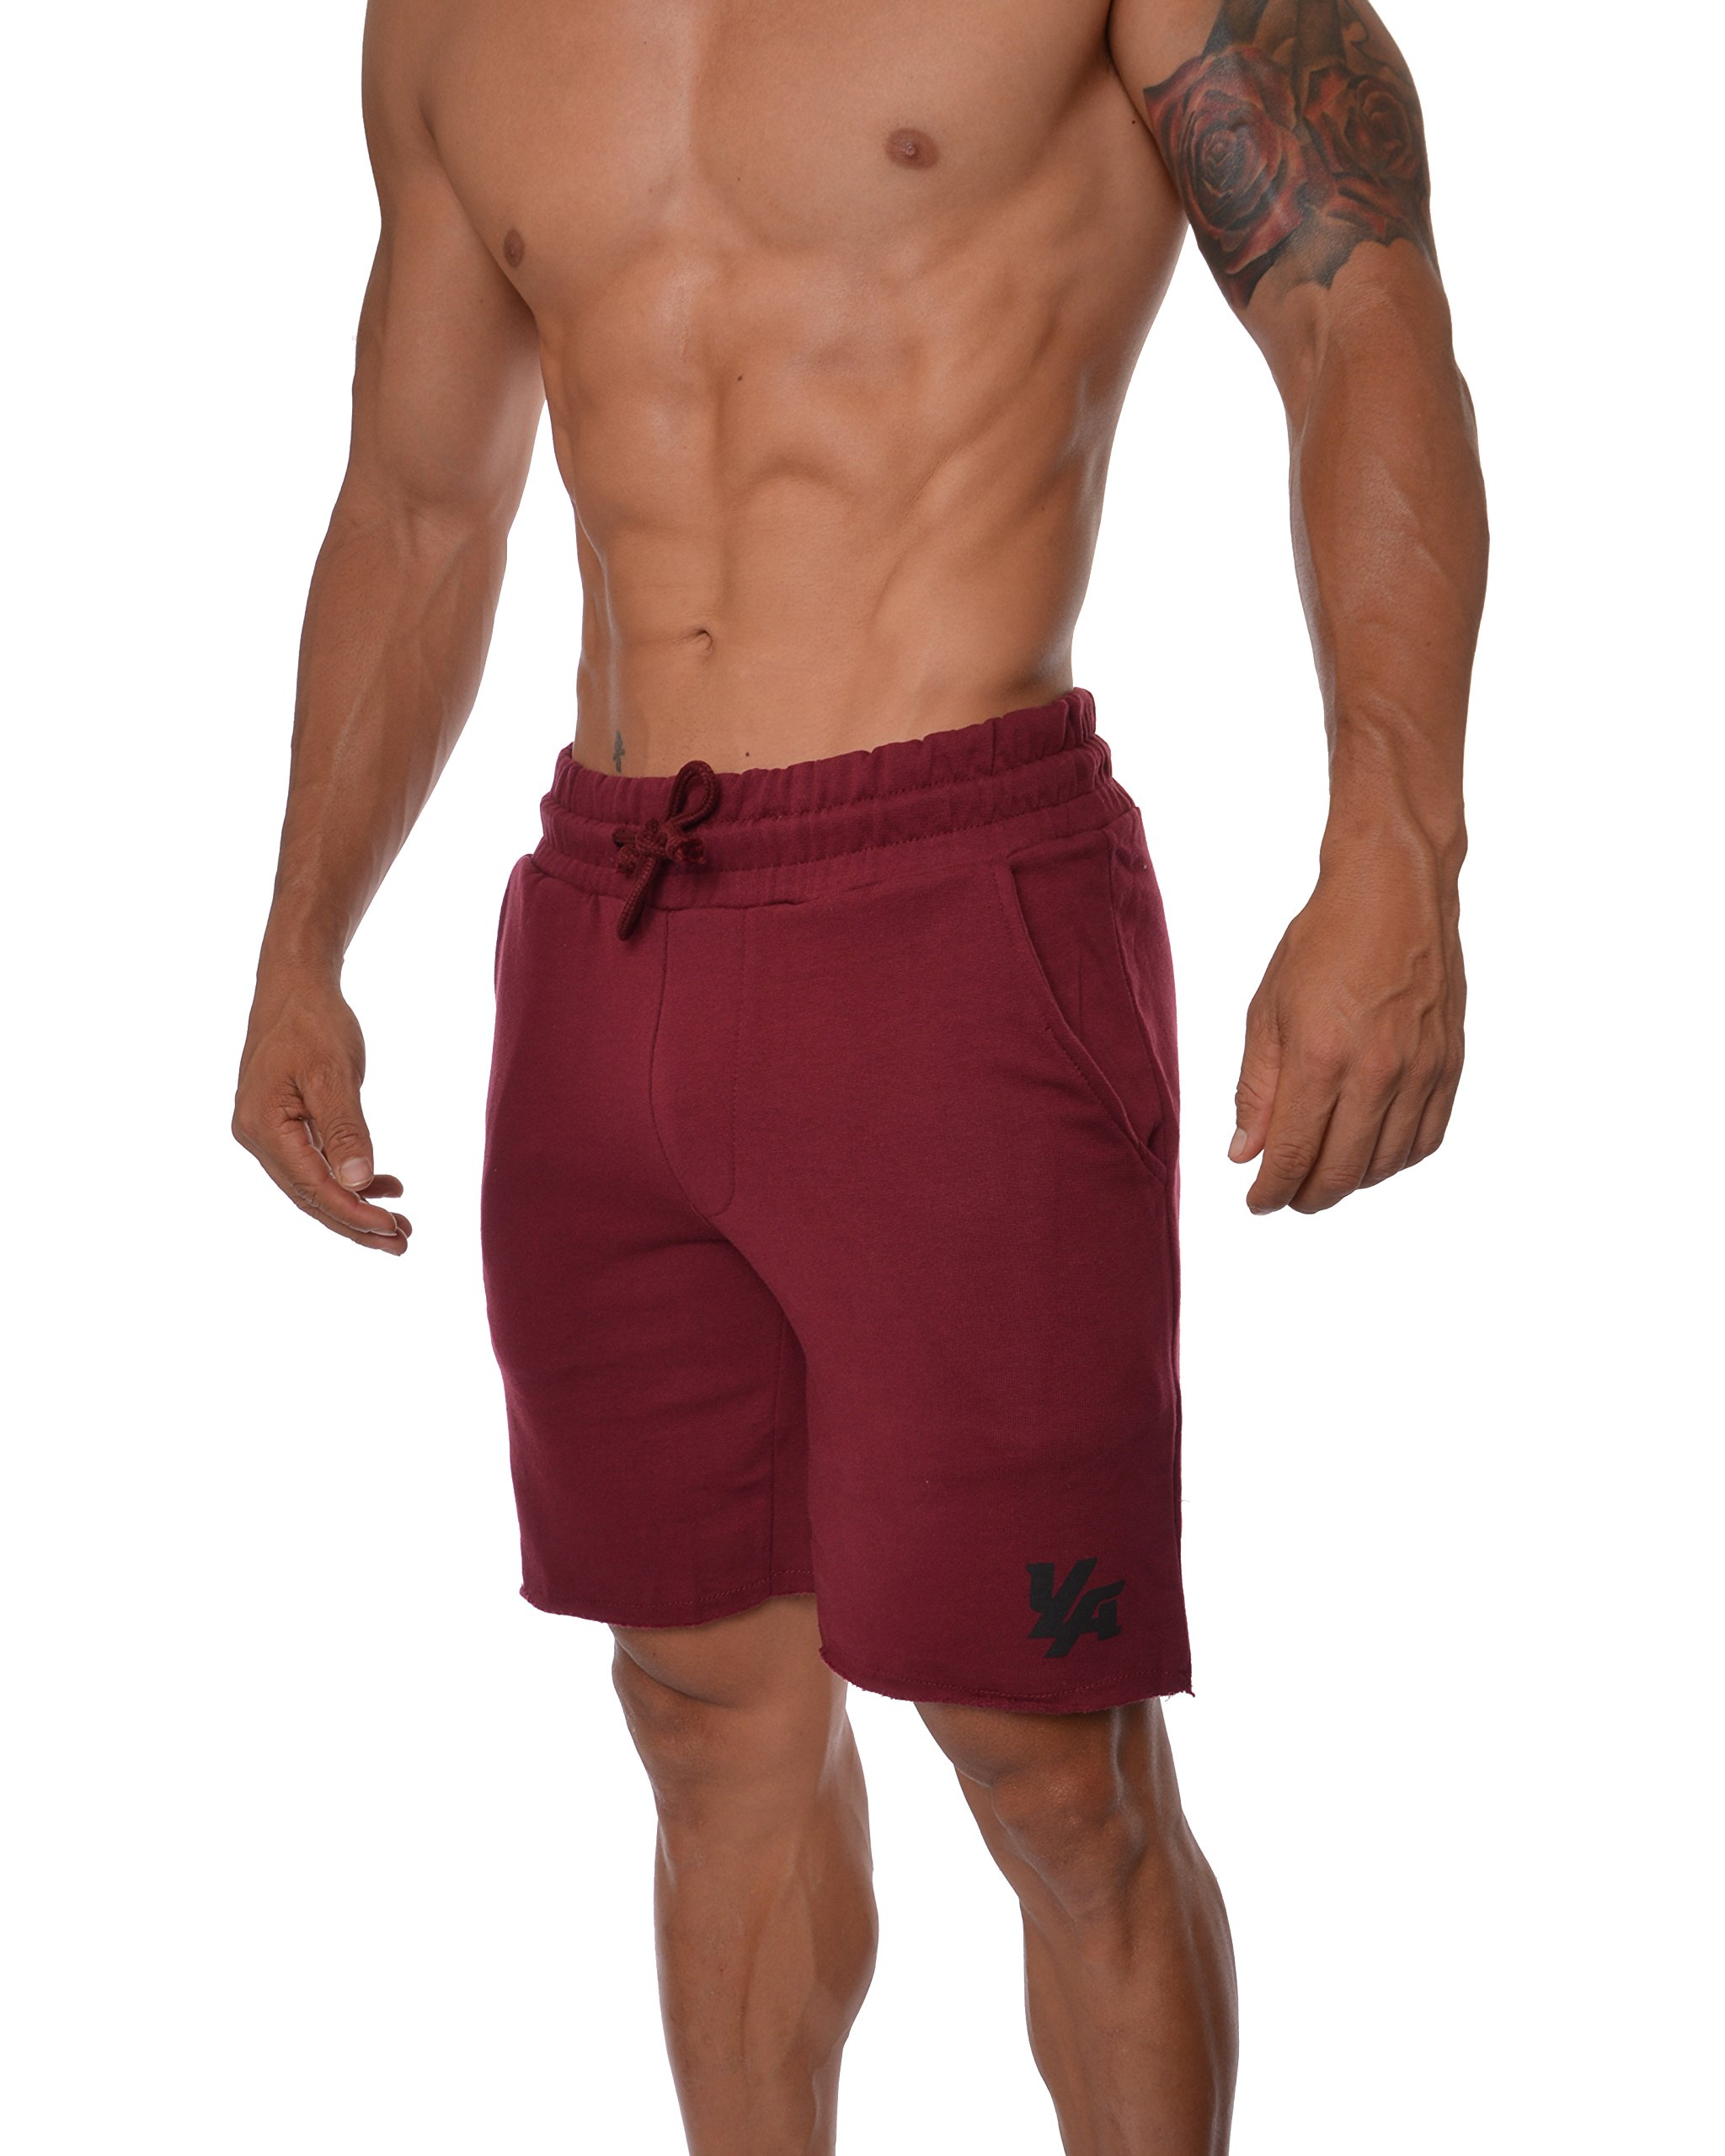 YoungLA Gym Shorts for Men French Terry Cotton